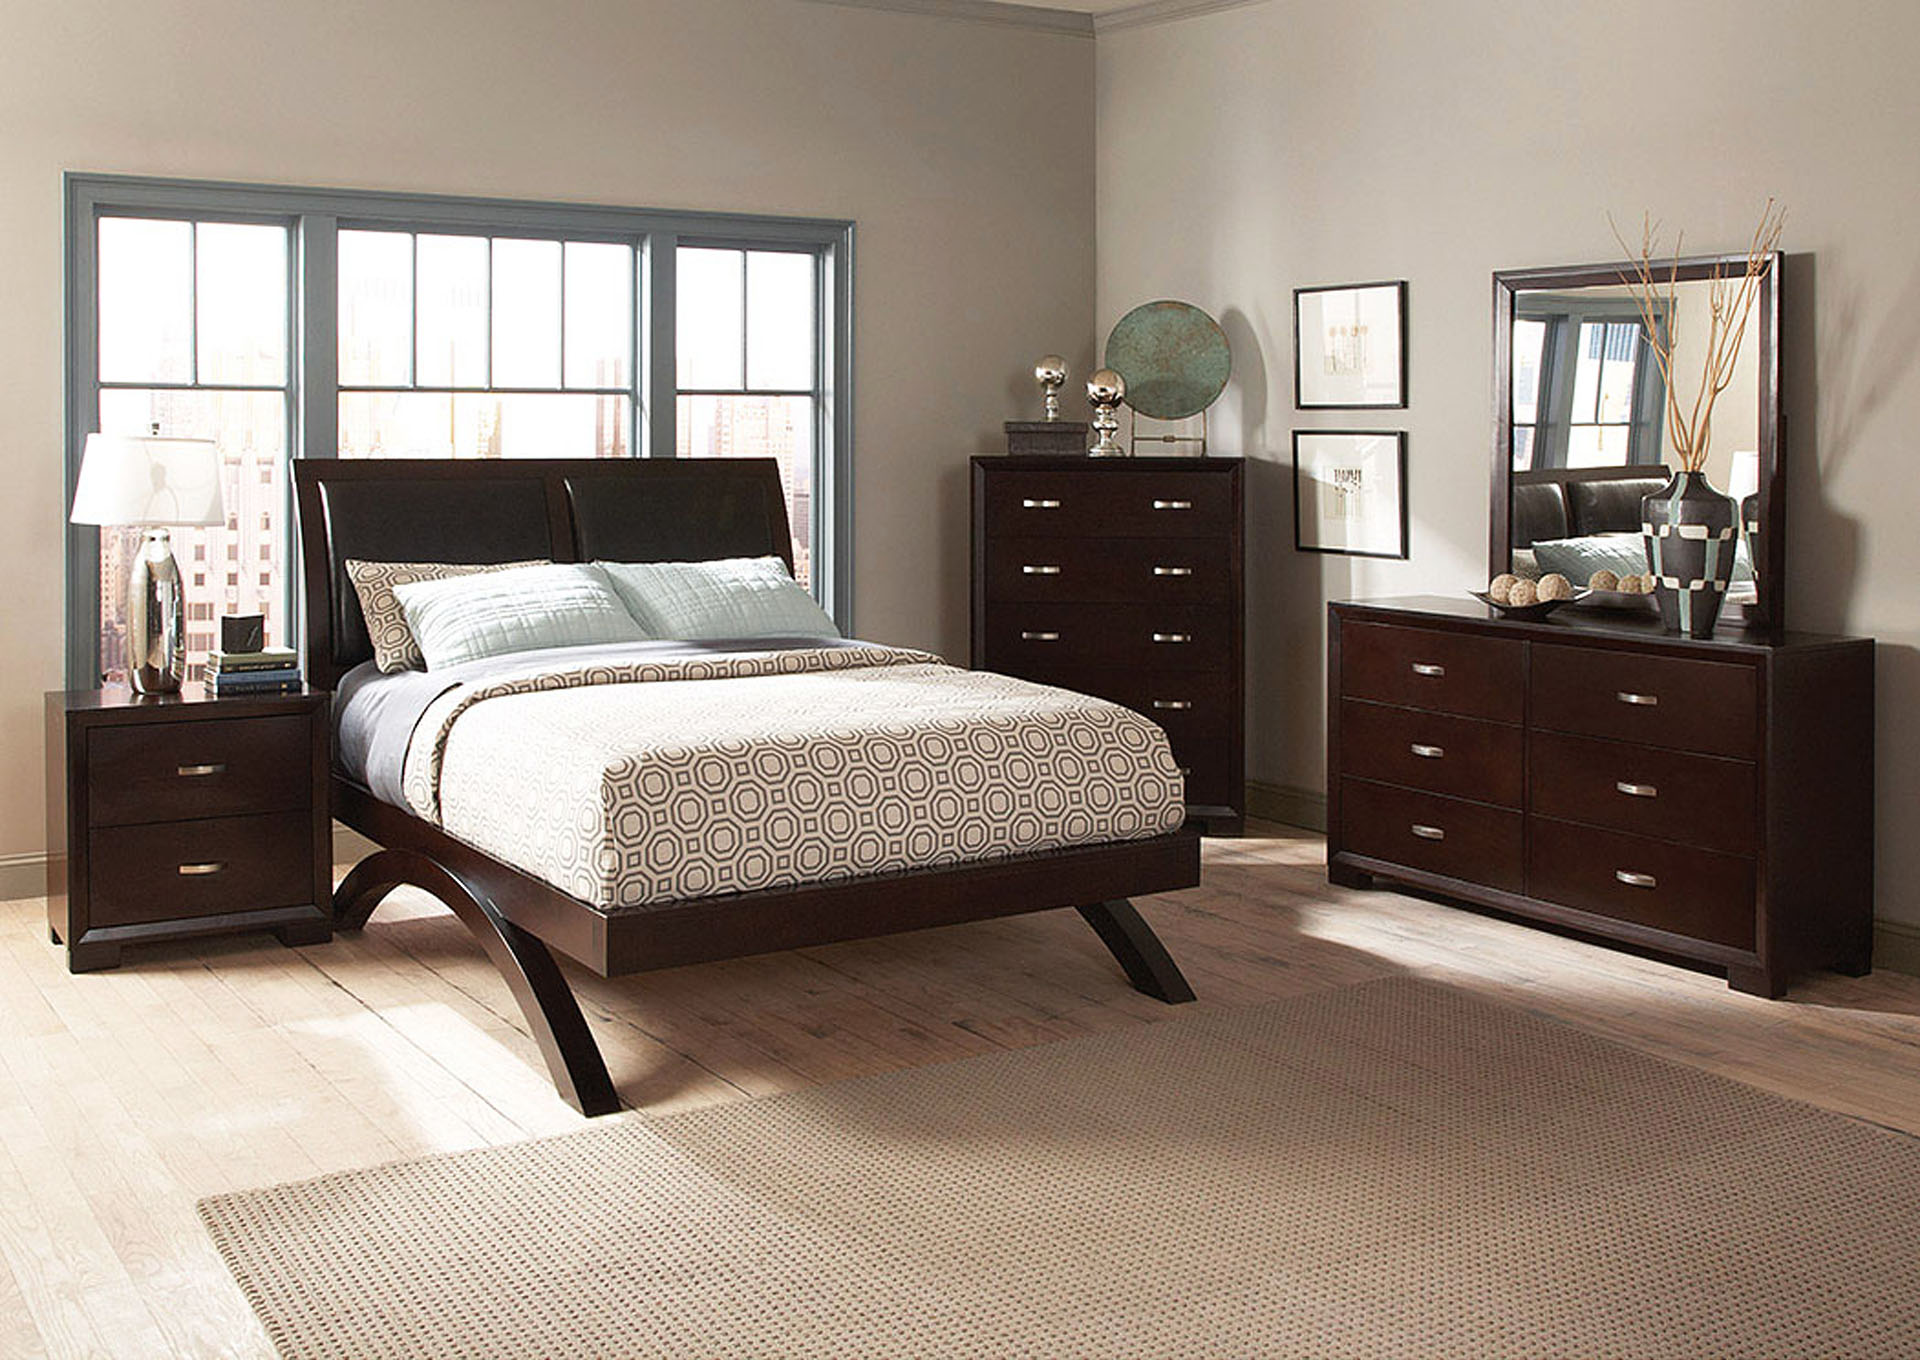 Astrid Queen Platform Bed w/ Dresser, Mirror and Nightstand,Homelegance